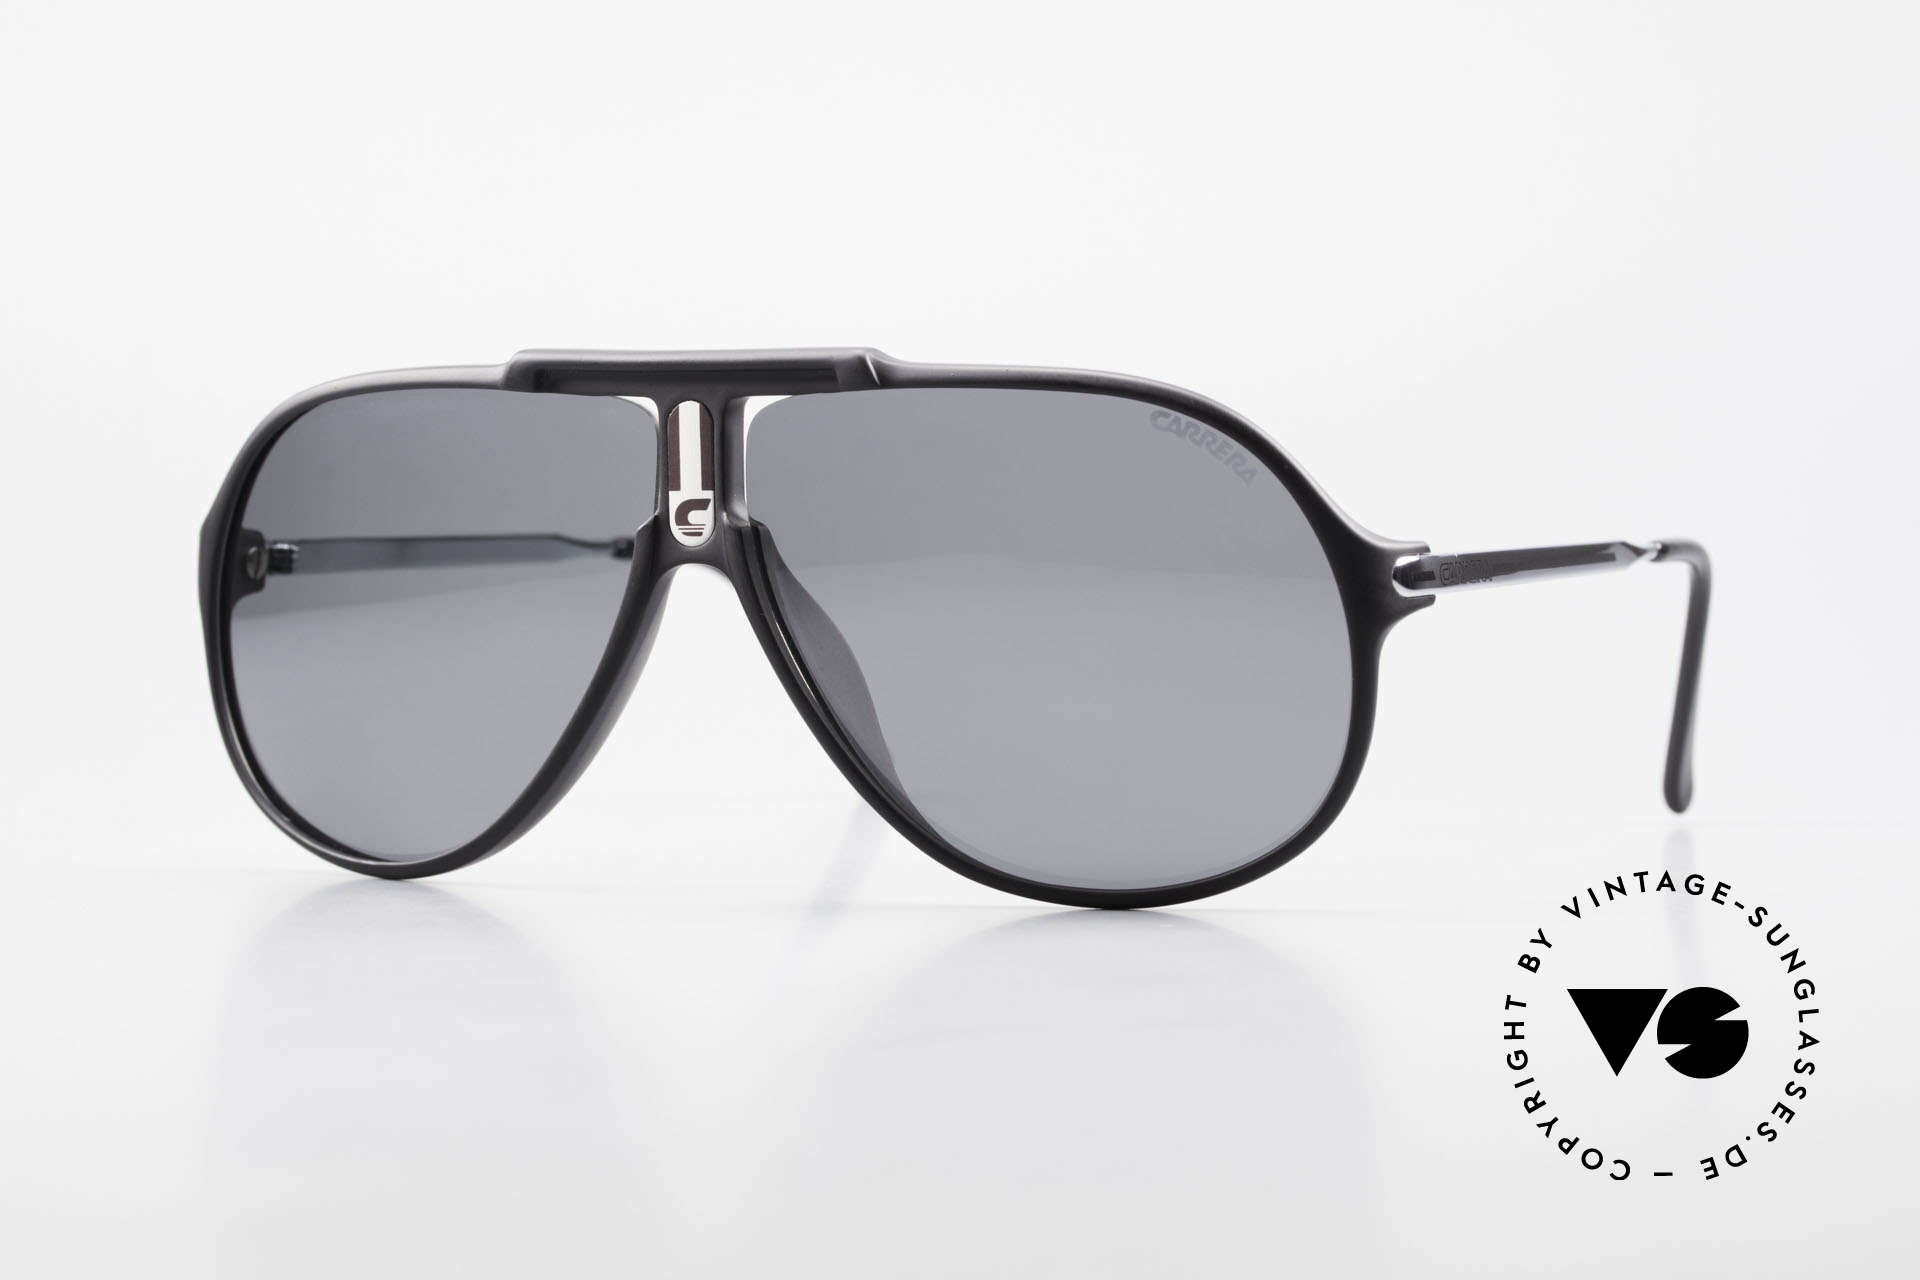 Carrera 5590 80's 90's Polarized Sunglasses, old Carrera sunglasses from the Collection 1989/1990, Made for Men